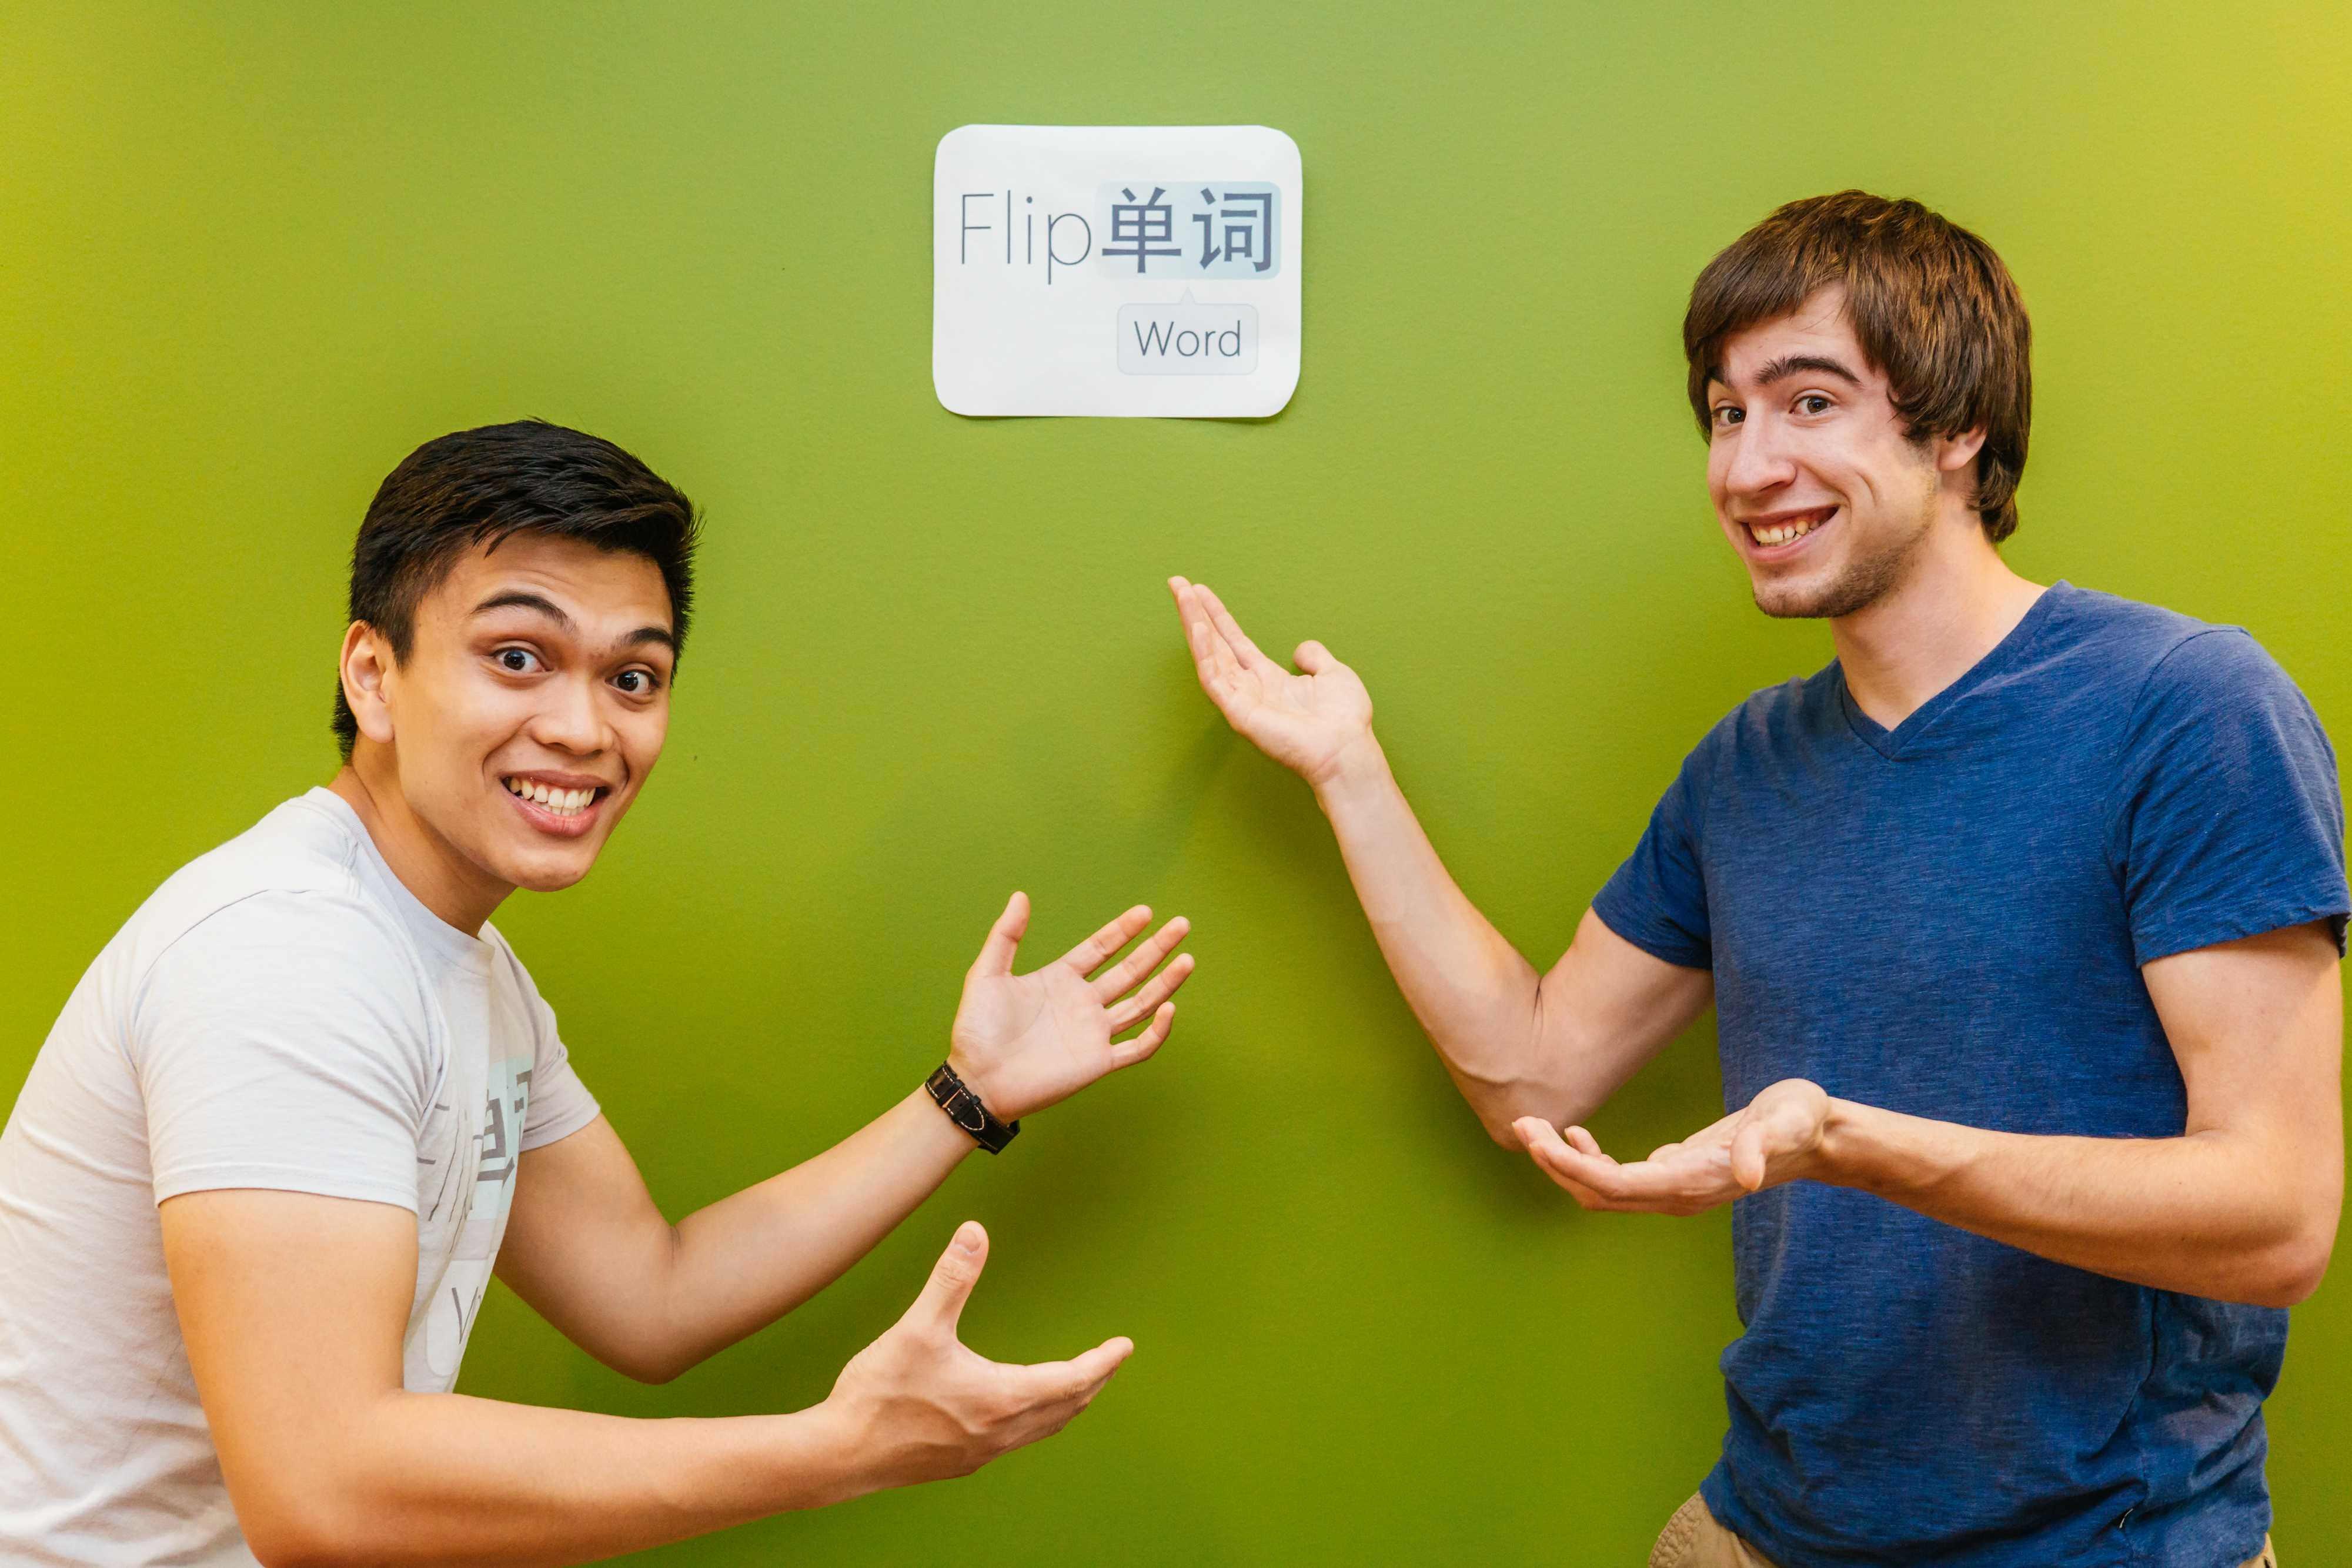 Joseph Milla, left, and Thomas Reese developed a language learning Webapplication thattakes various words on websites and changes some of them to a language of the visitor's choice.